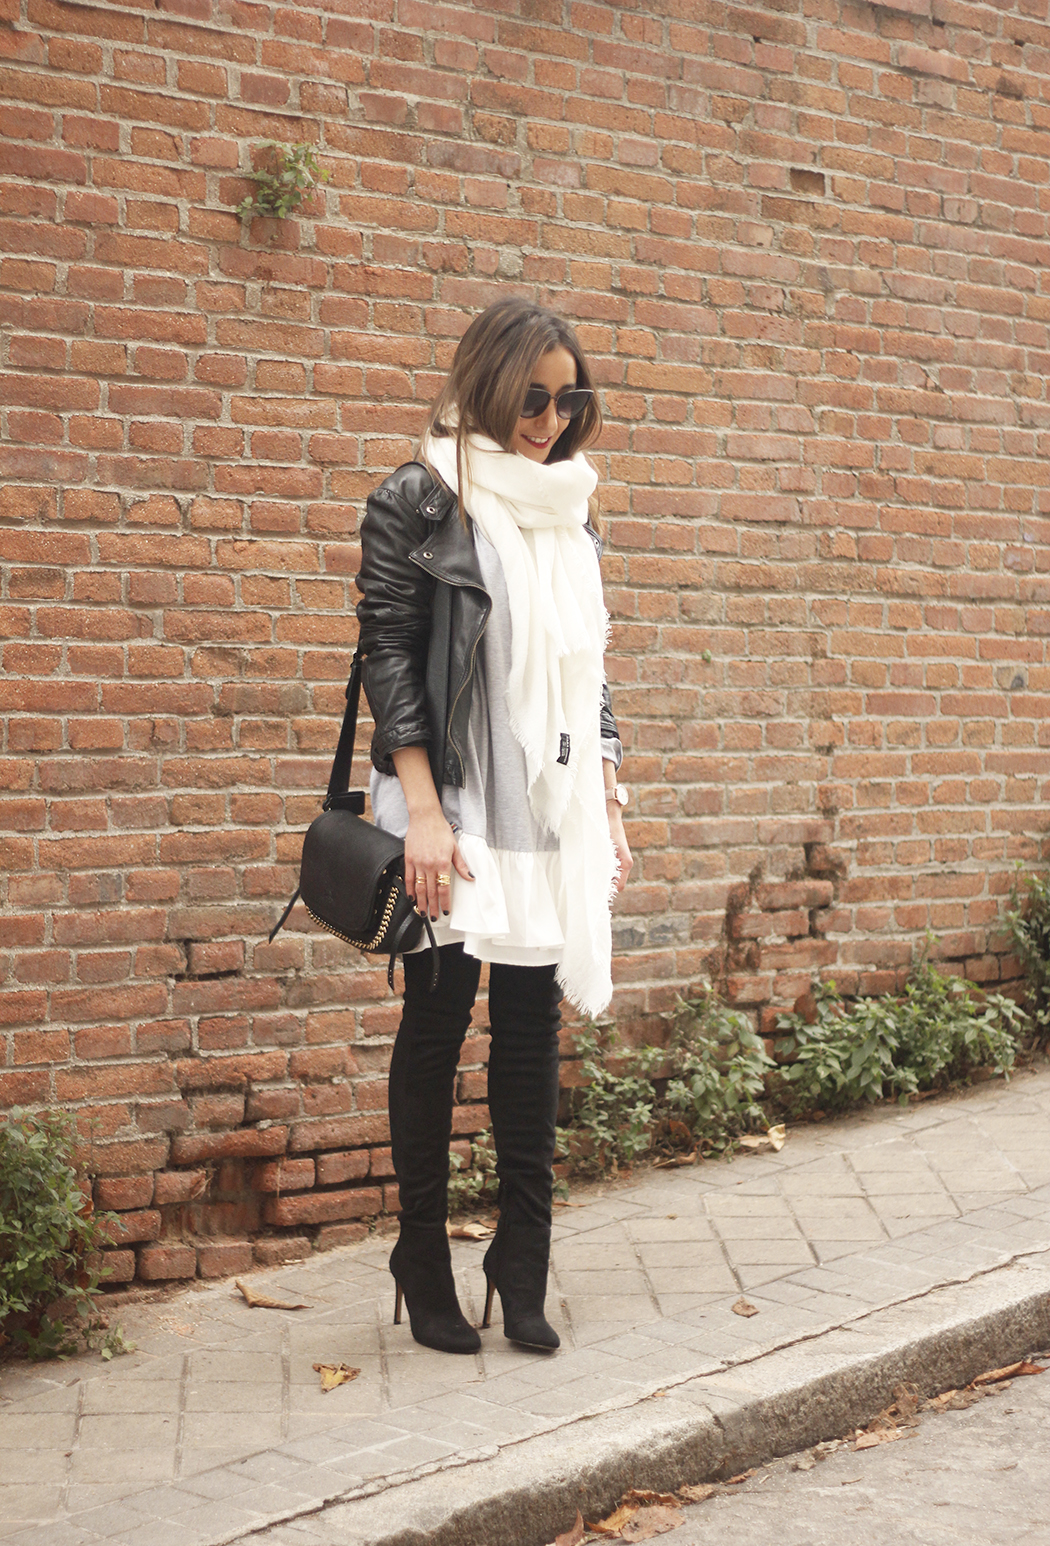 Leather Jacket gray dress over the knee boots style outfit fashion coach bag white scarf15